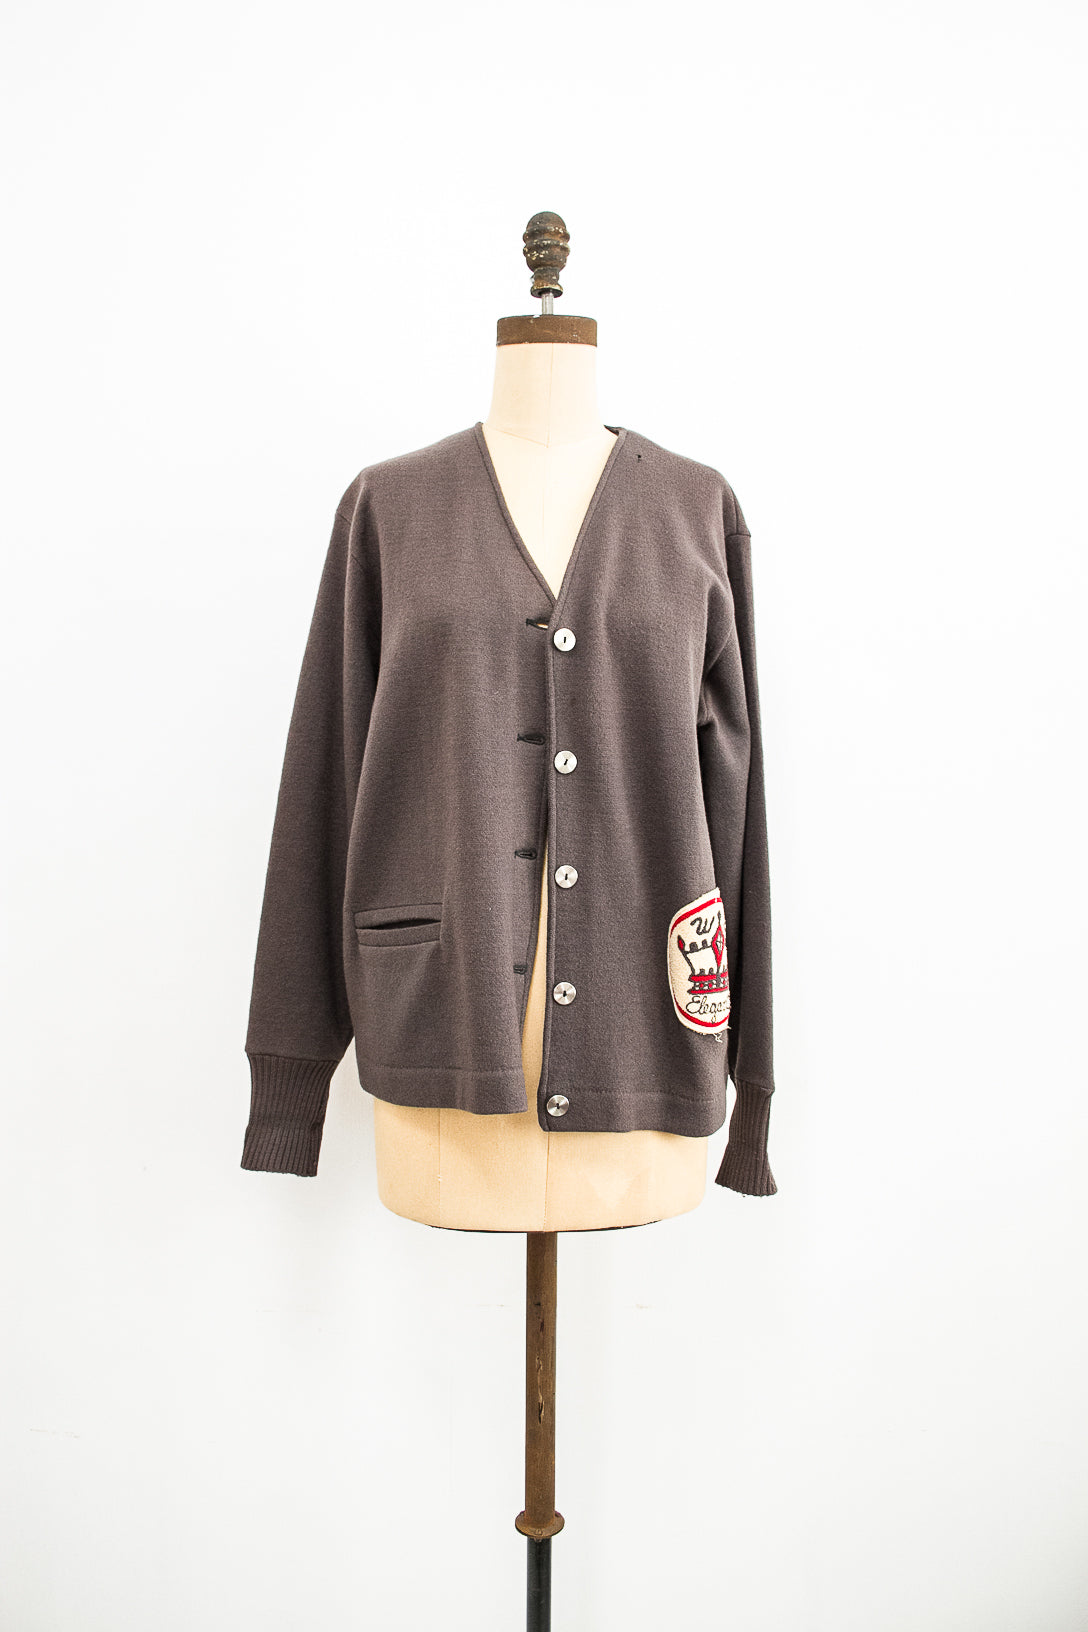 1960s Grey Wool Collegiate Cardigan